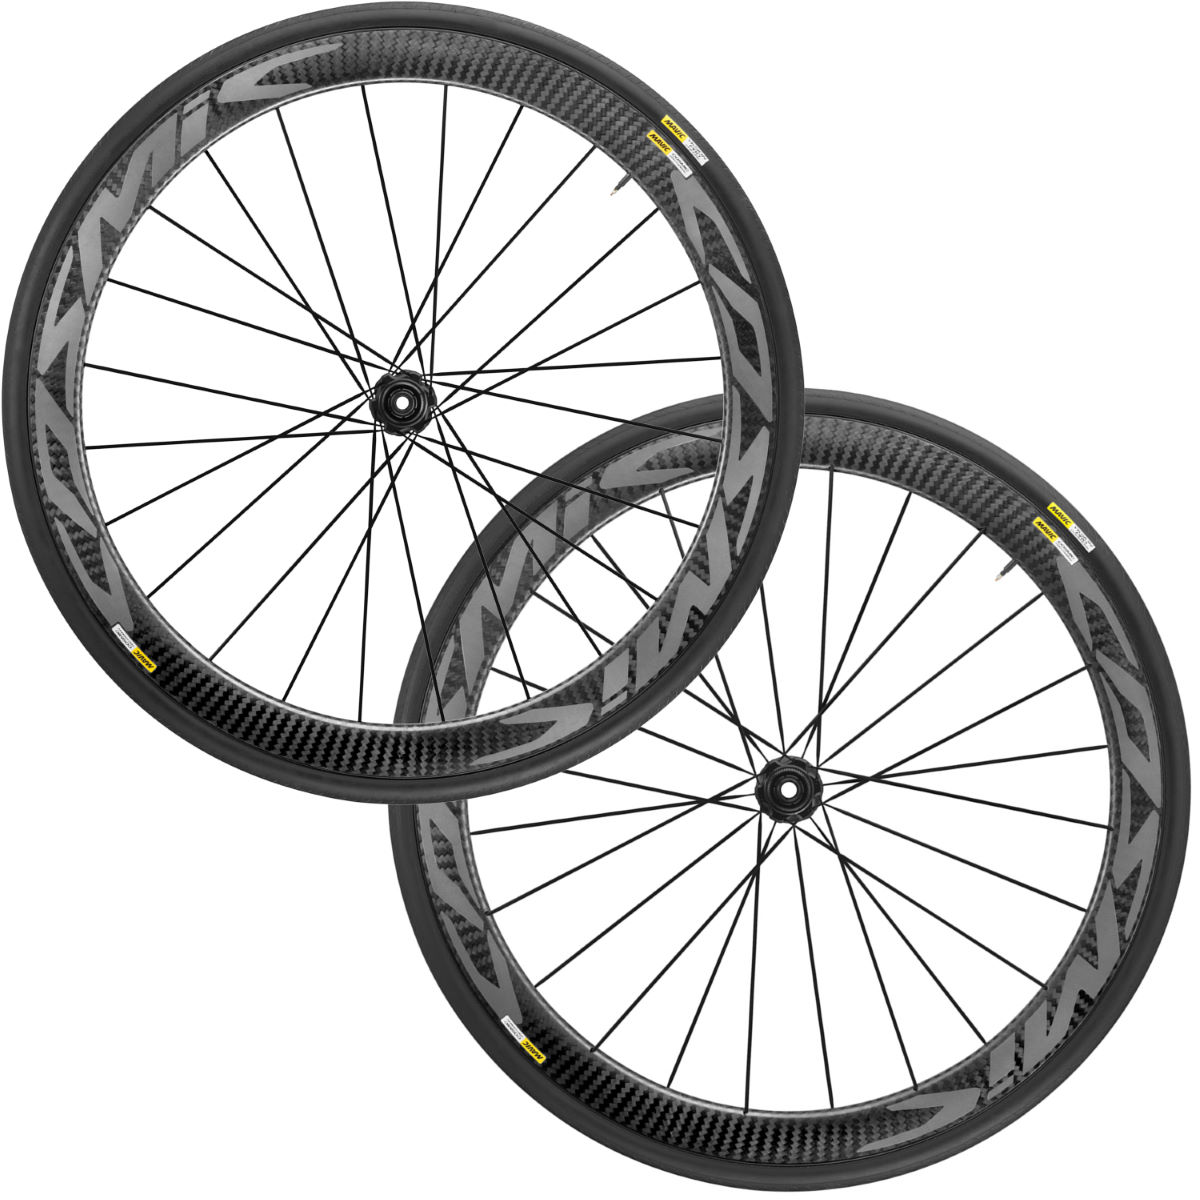 Wheel set Mavic Cosmic Pro Carbon Disc CL - Competition wheels